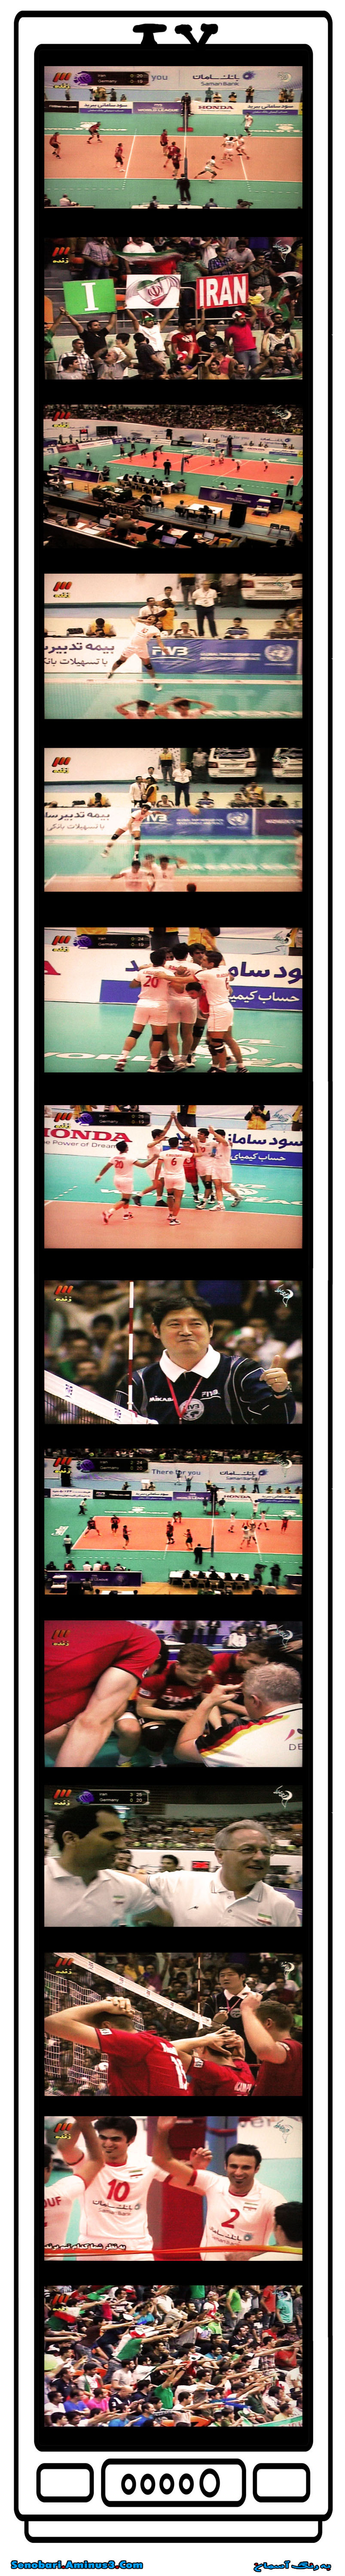 Volleyball  Germany  Iran